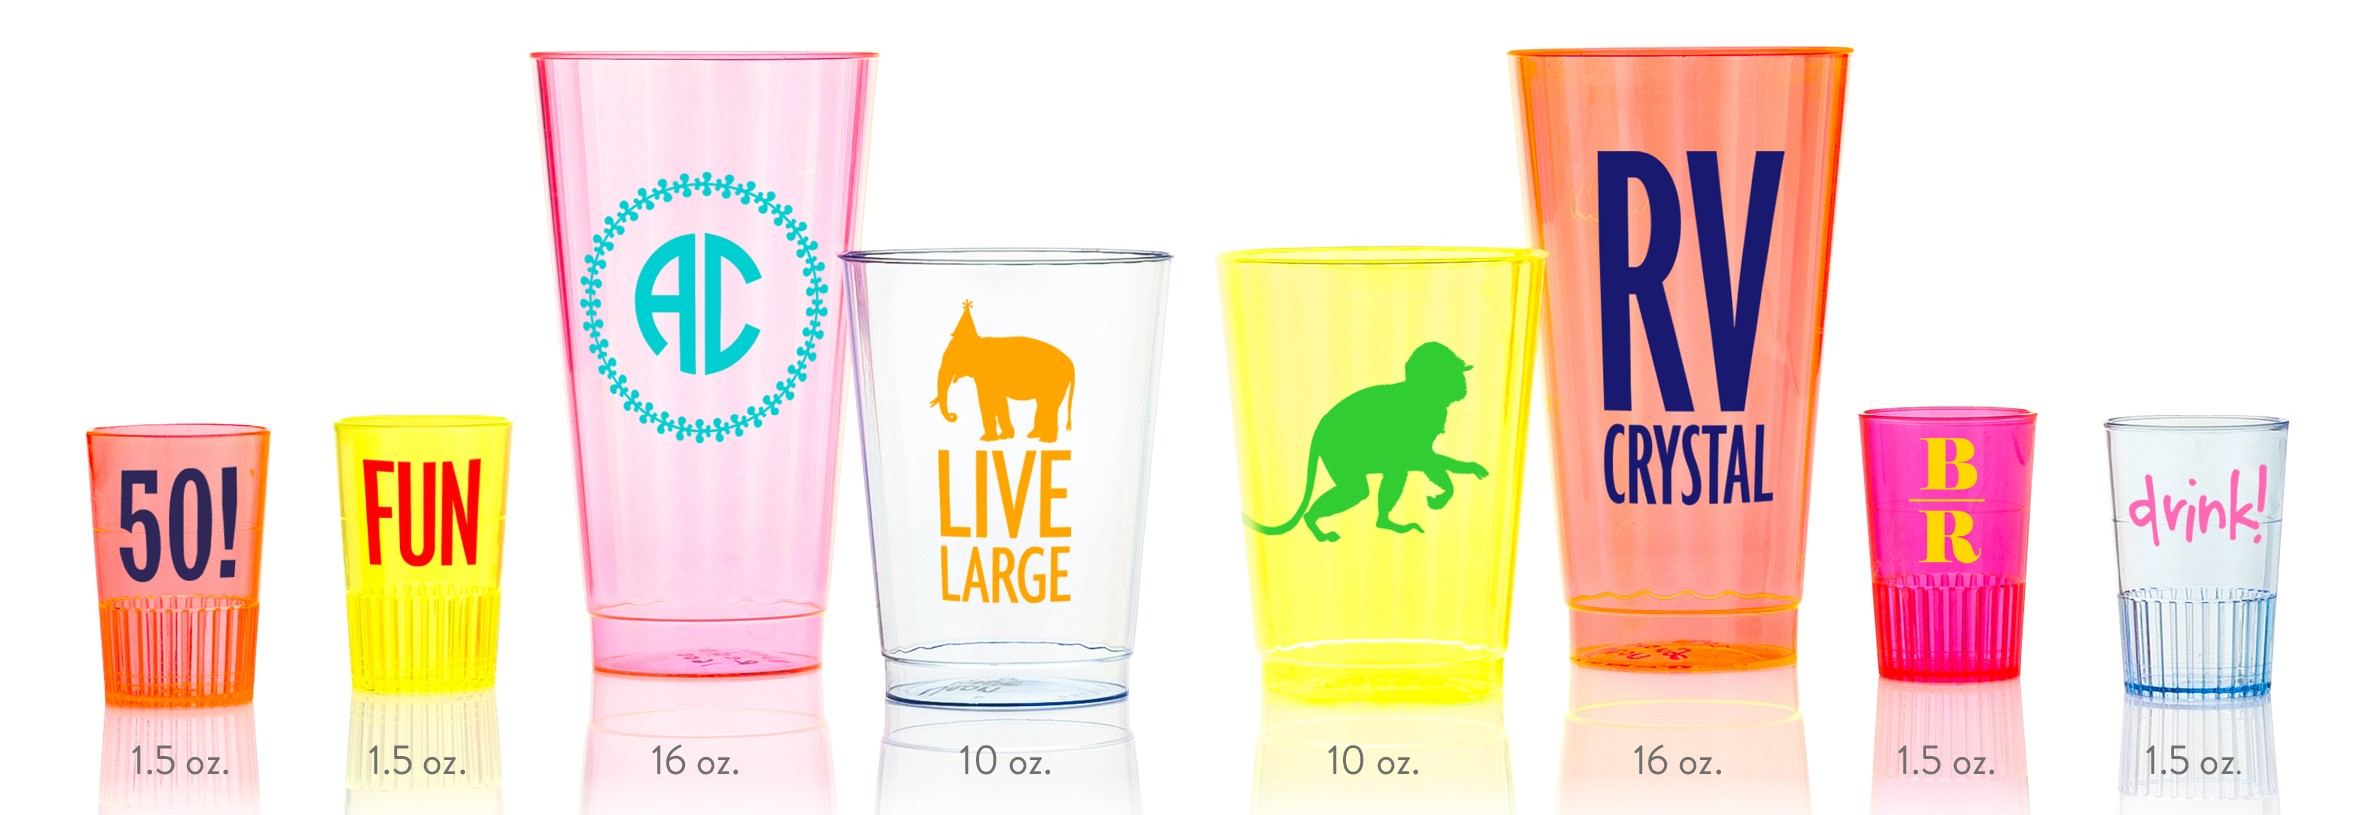 Personalized Tumbler Cups | Customizable Tumblers | Personalized Plastic Cups